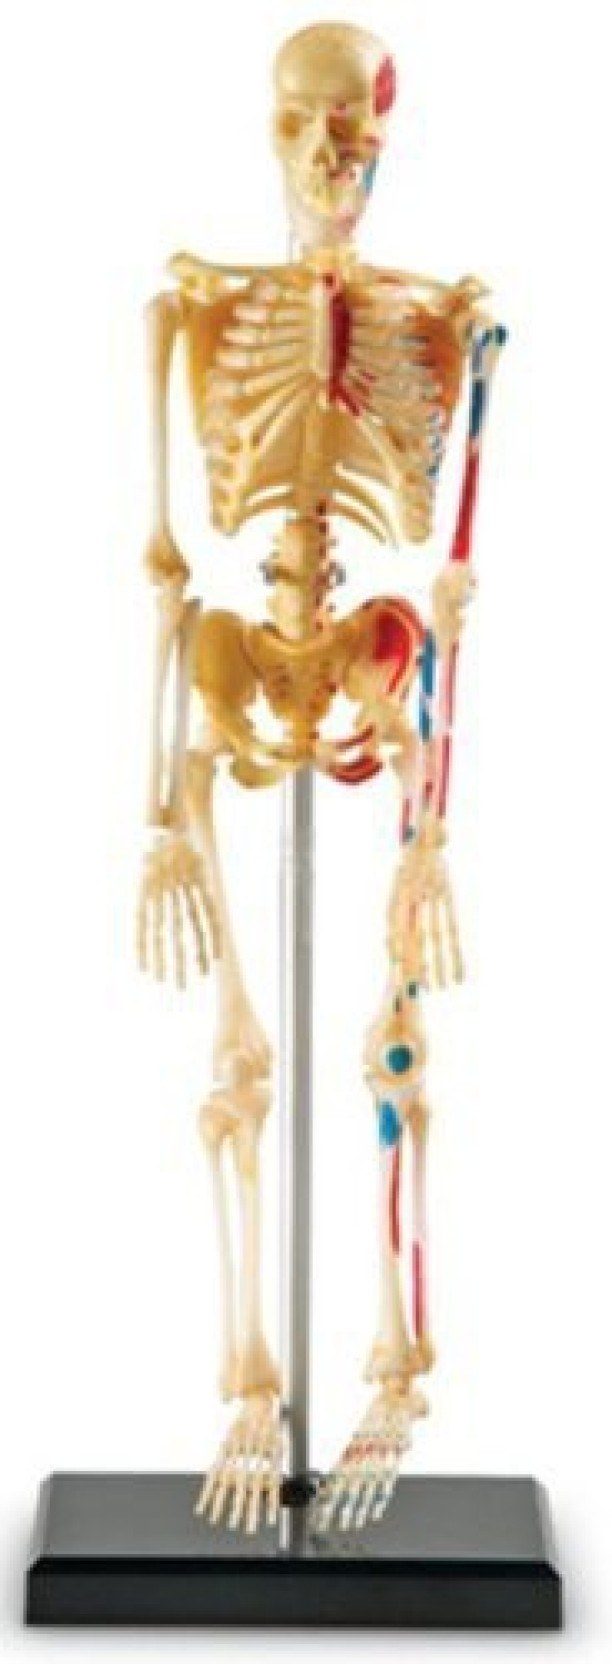 Learning Resources Human Skeleton Anatomy Model Price In India Buy